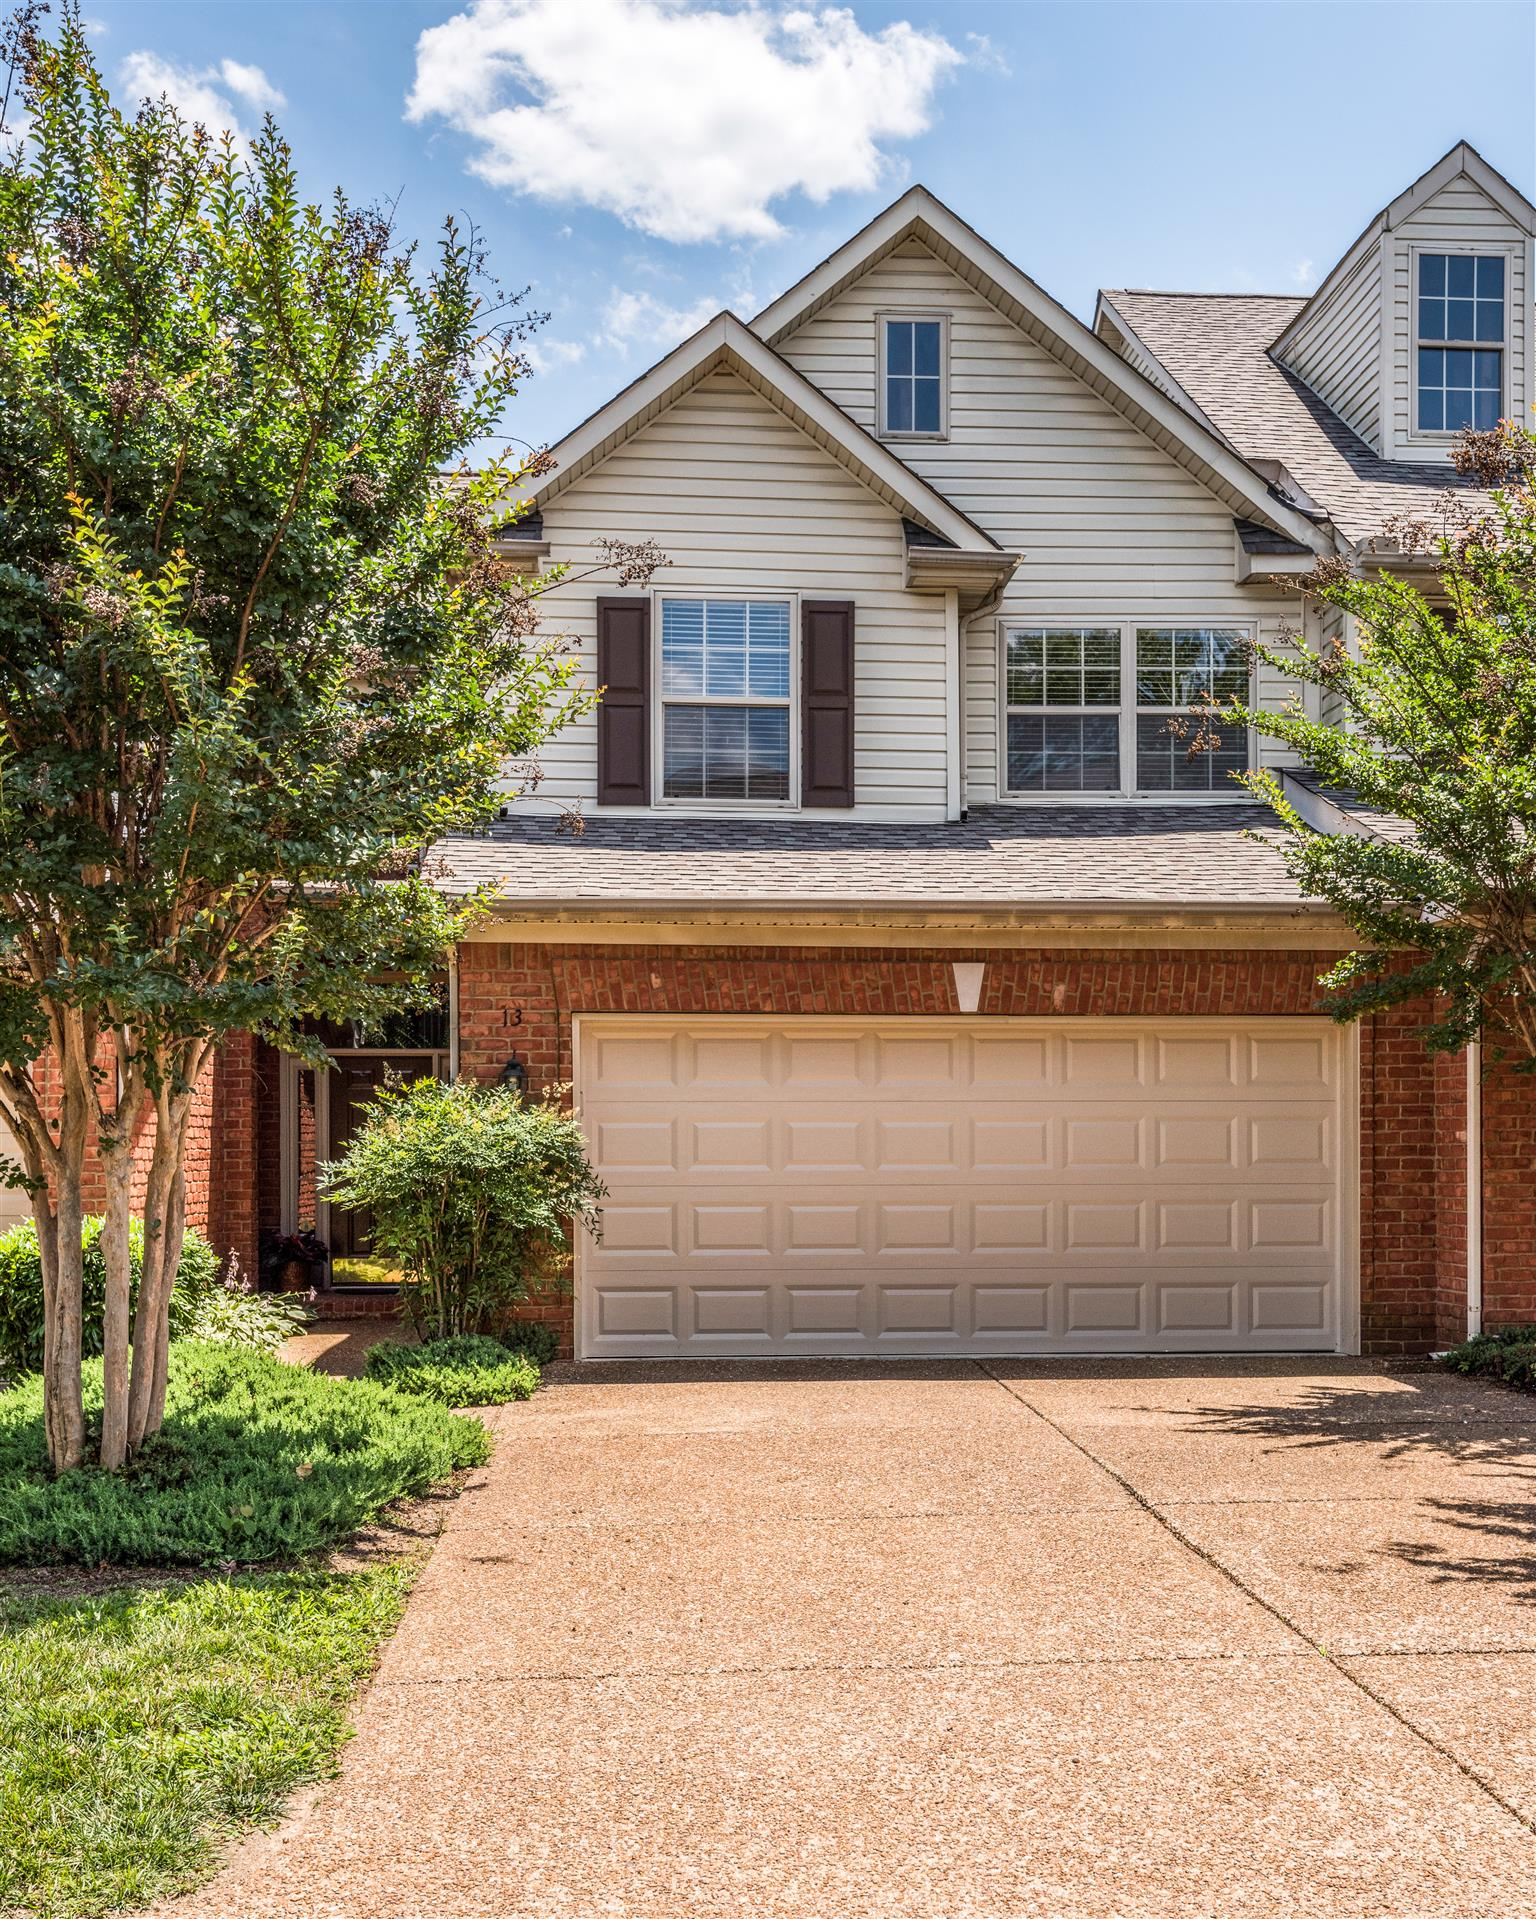 Photo of 641 Old Hickory Blvd Unit 13  Brentwood  TN